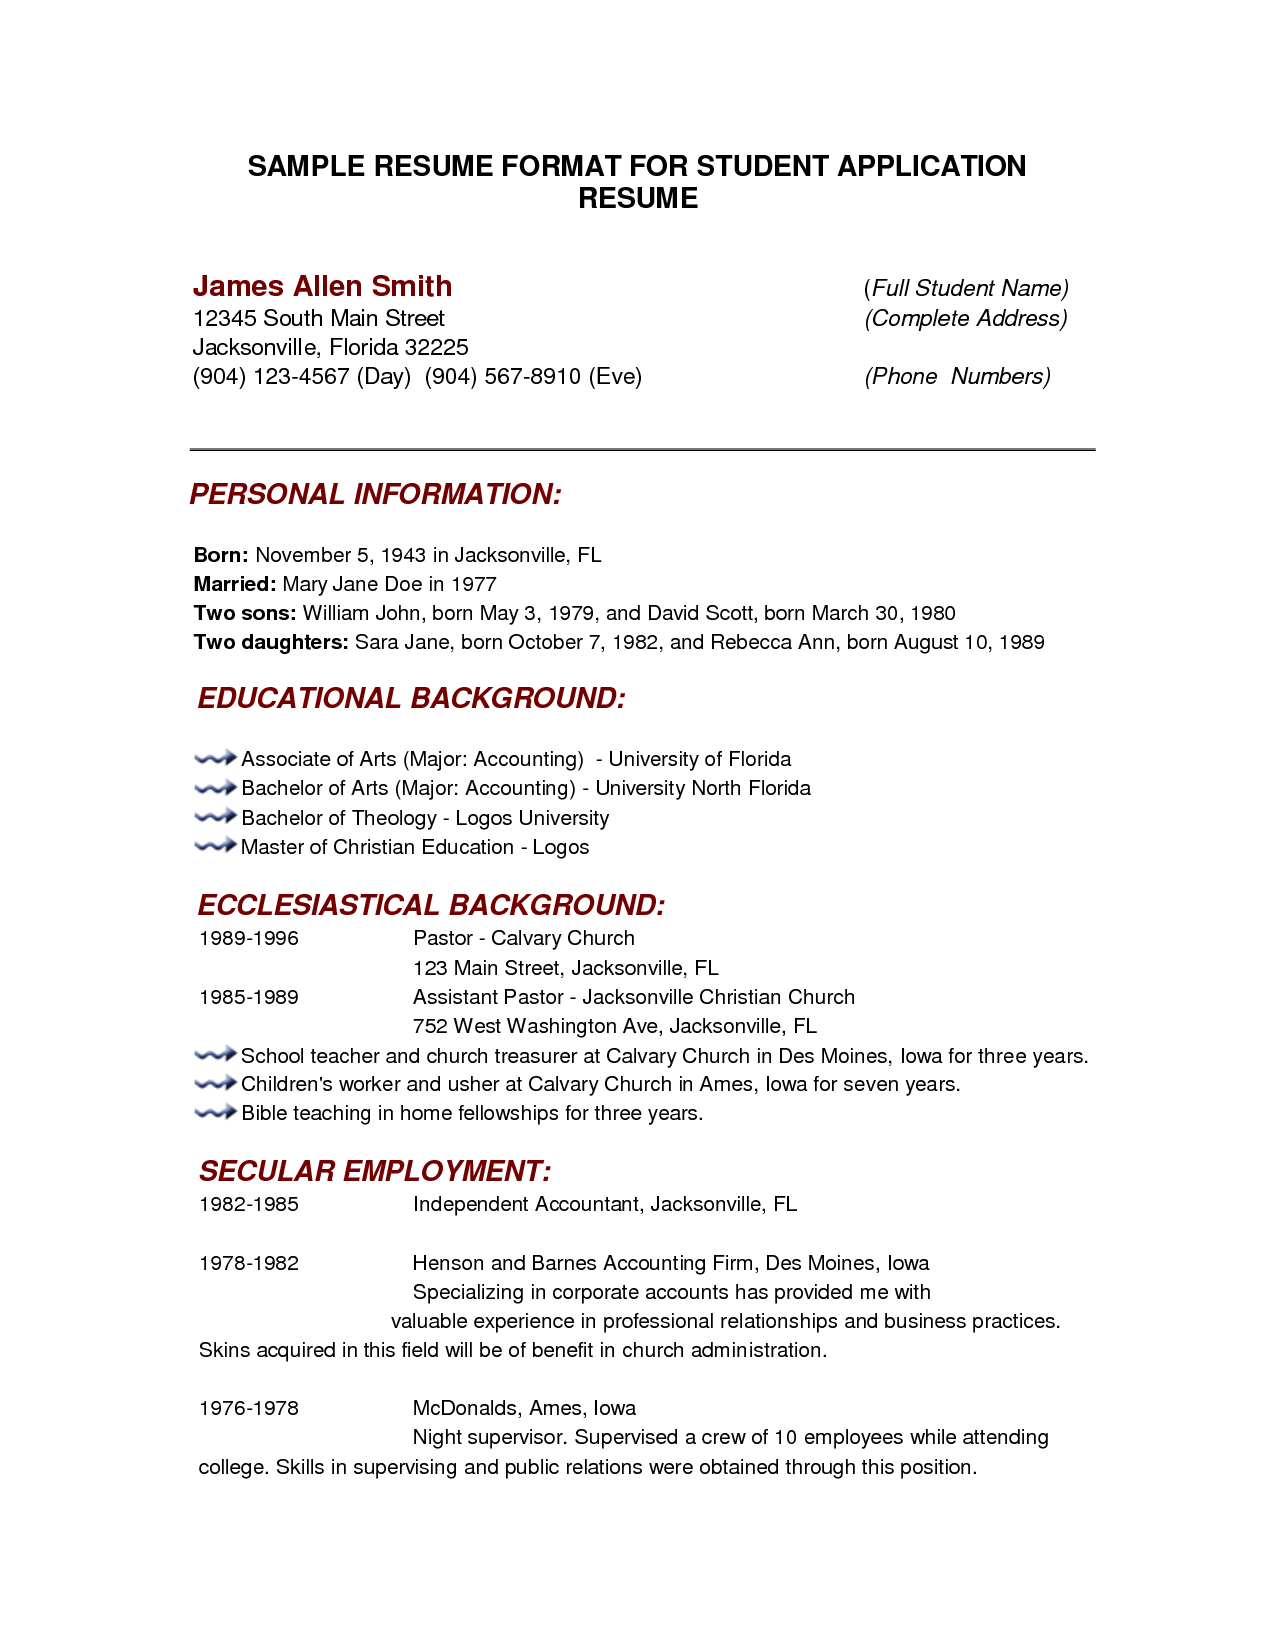 Full block resume format style for business letter examples basic doorman resume sample theatre senior technical recruiter templates curriculum vitae engineering best free home design idea inspiration yelopaper